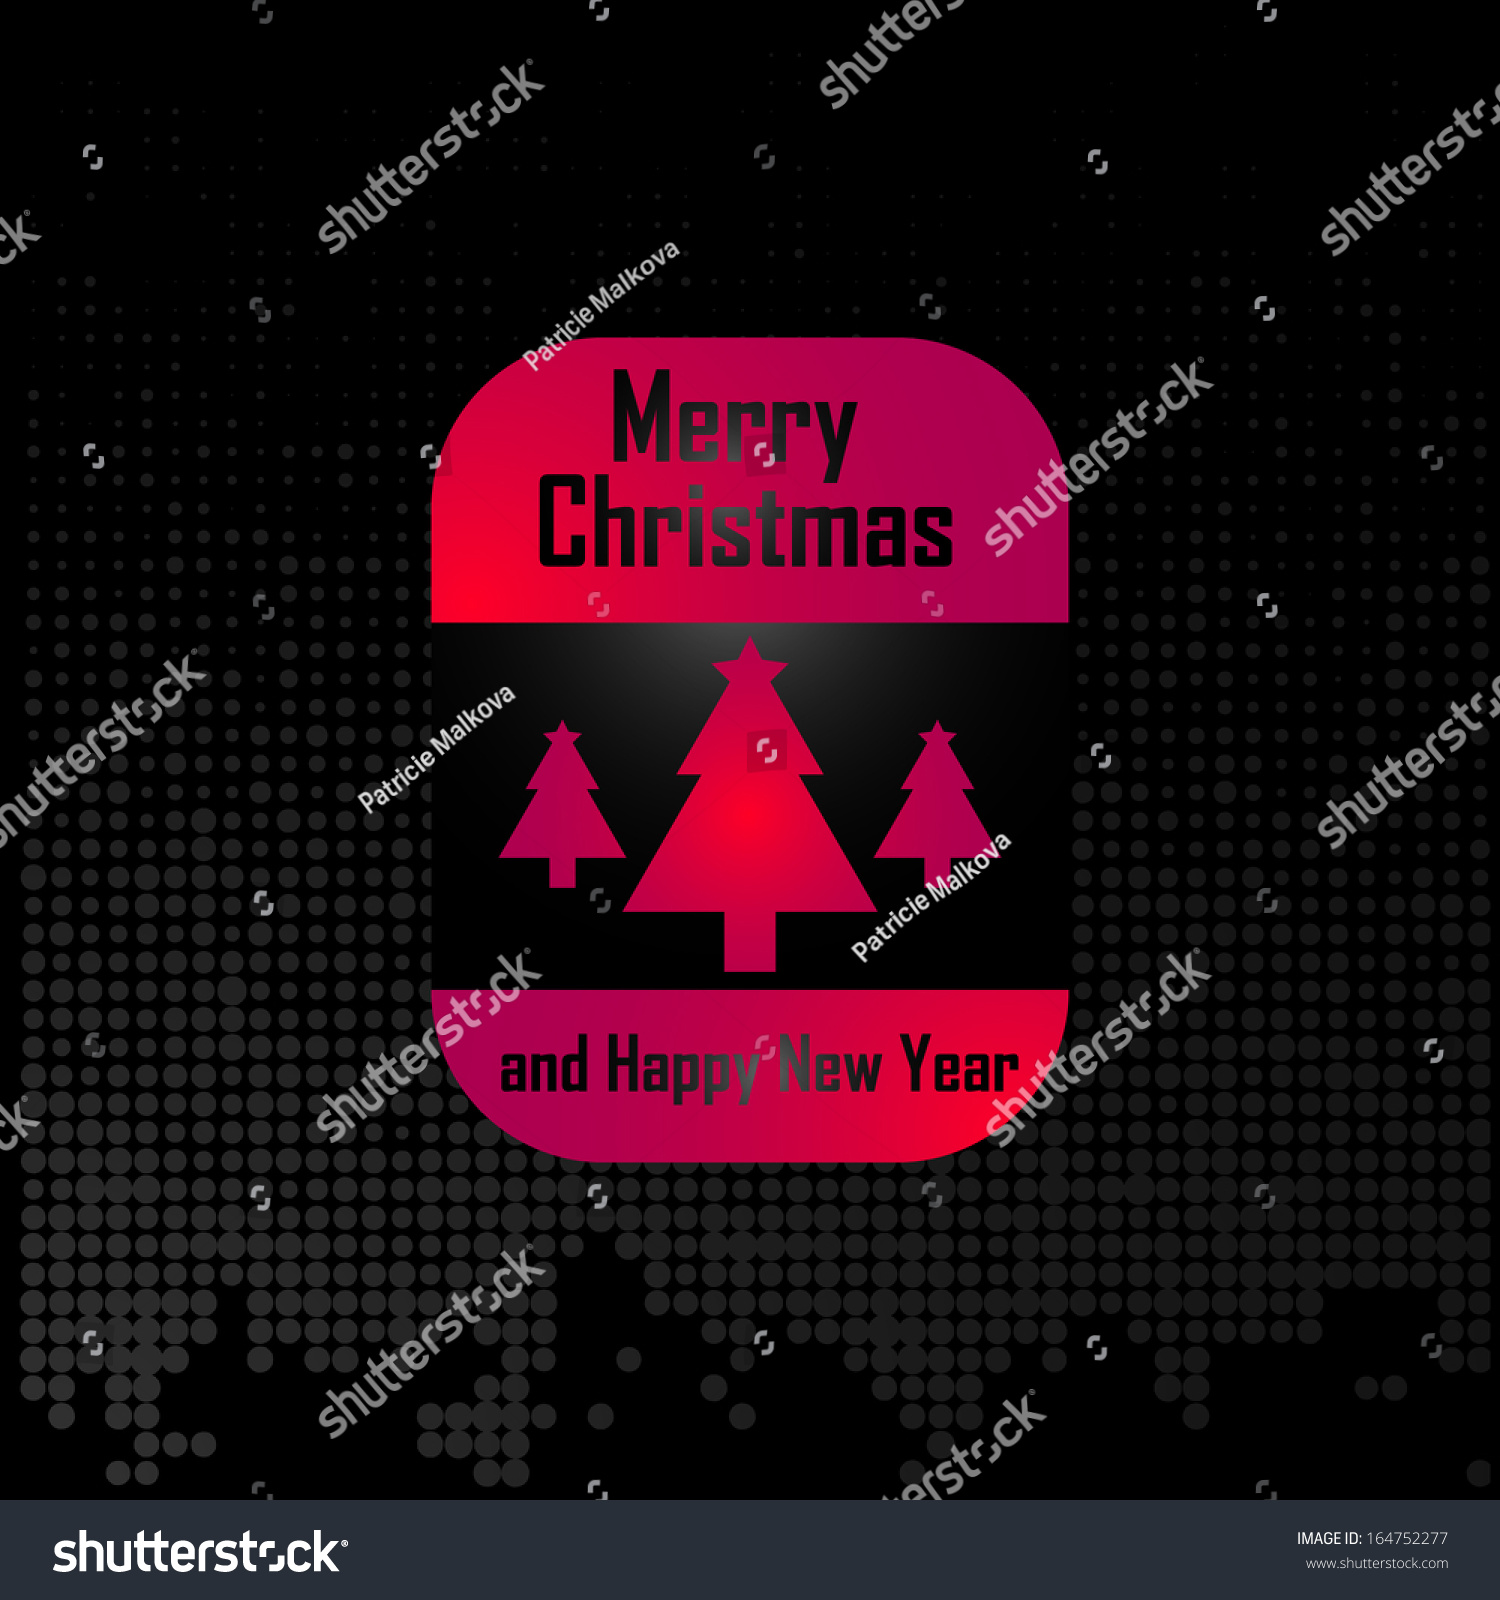 Merry Christmas Card Celebration Vector Colored Stock Vector ...